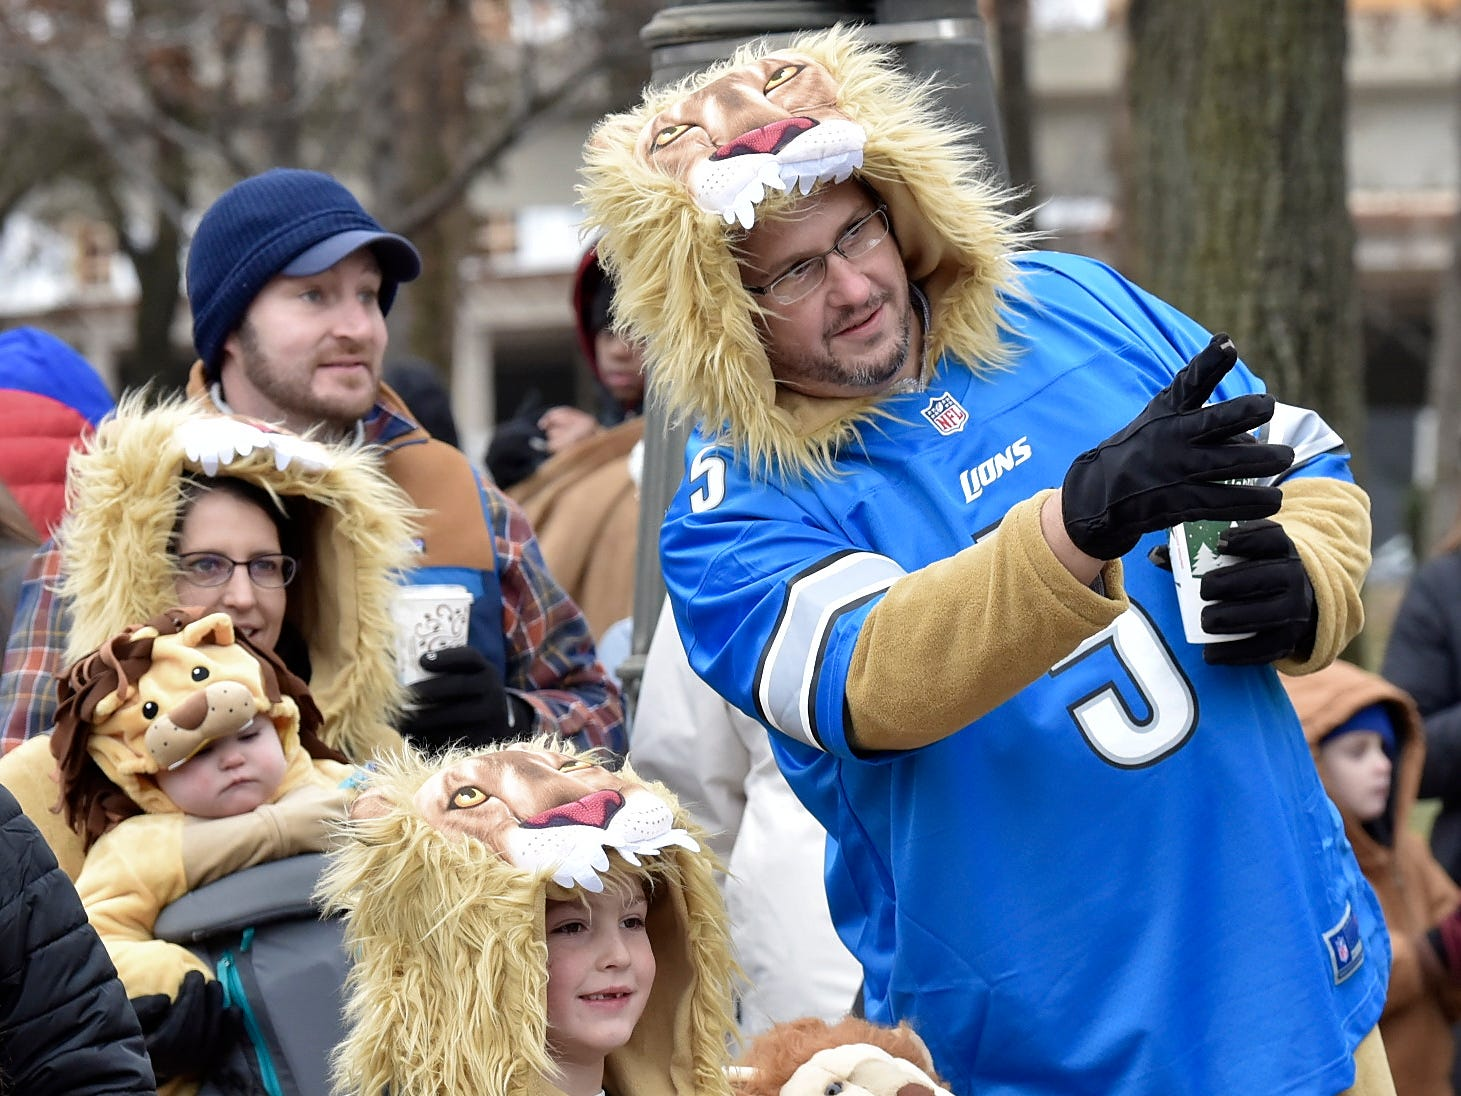 The Konopka family, including, Patrick, left, 11-months-old, mother, Jessica, Lucas, 8, Caroline, 5, and father Eric, all of Northville, dress up in Detroit Lions outfits before they attend the game.